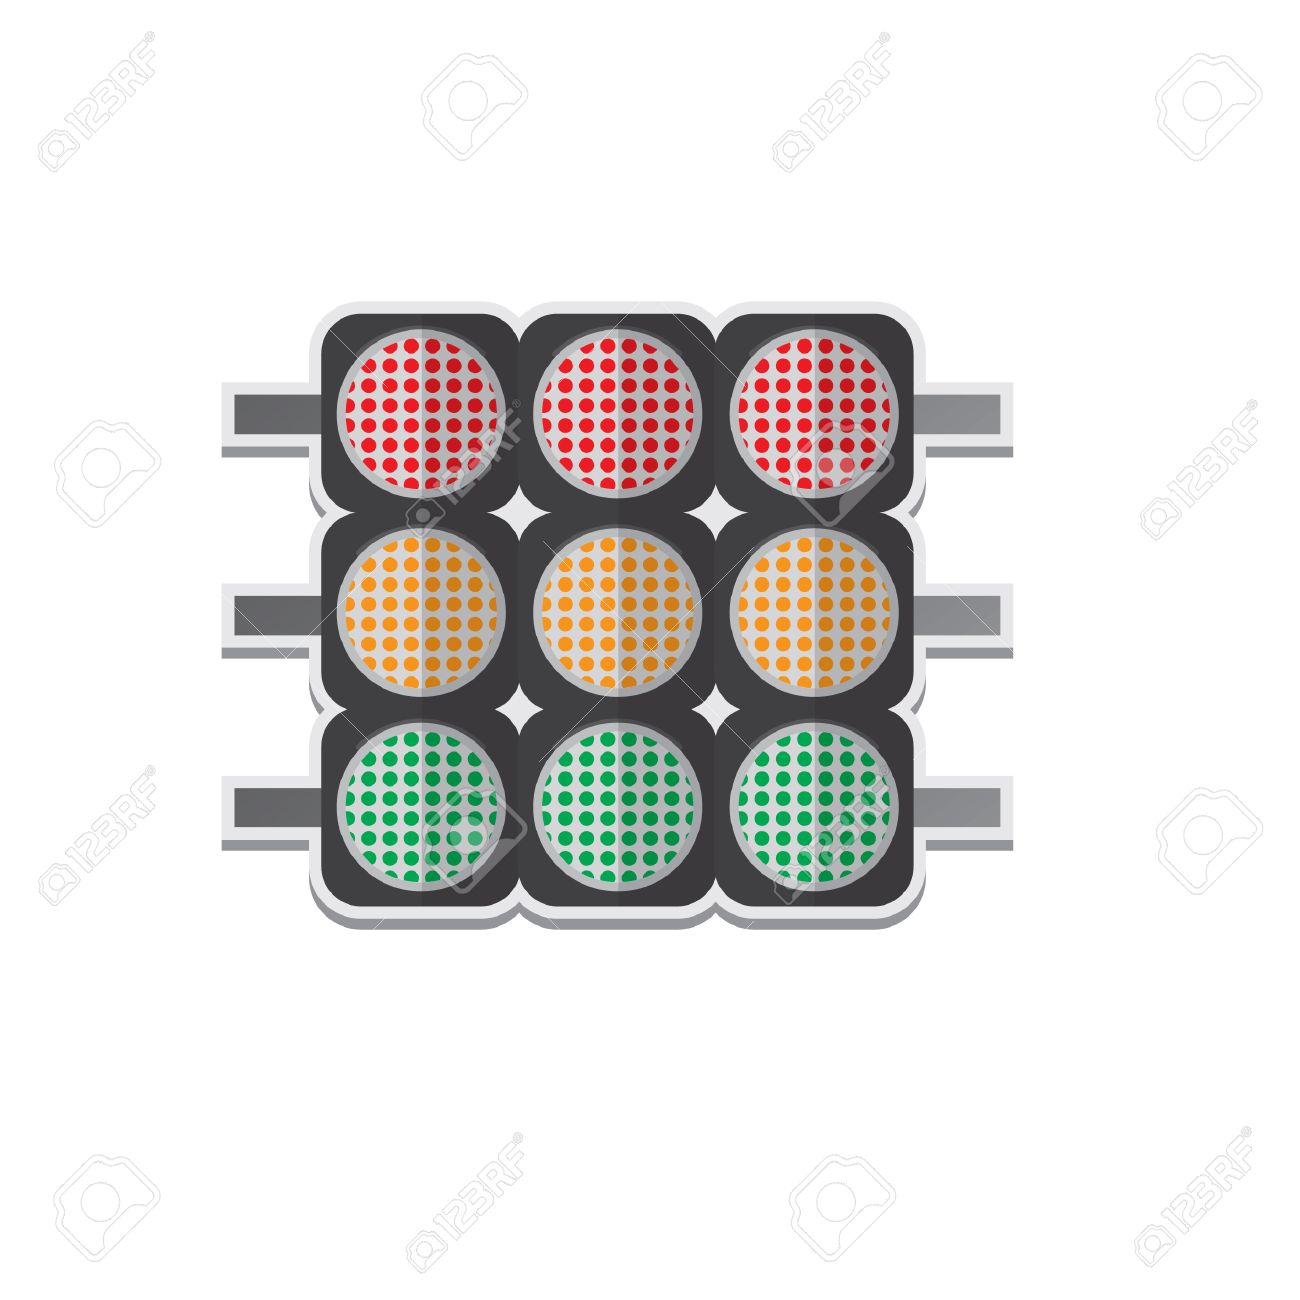 Race track lights royalty free cliparts vectors and stock race track lights stock vector 53261544 aloadofball Gallery